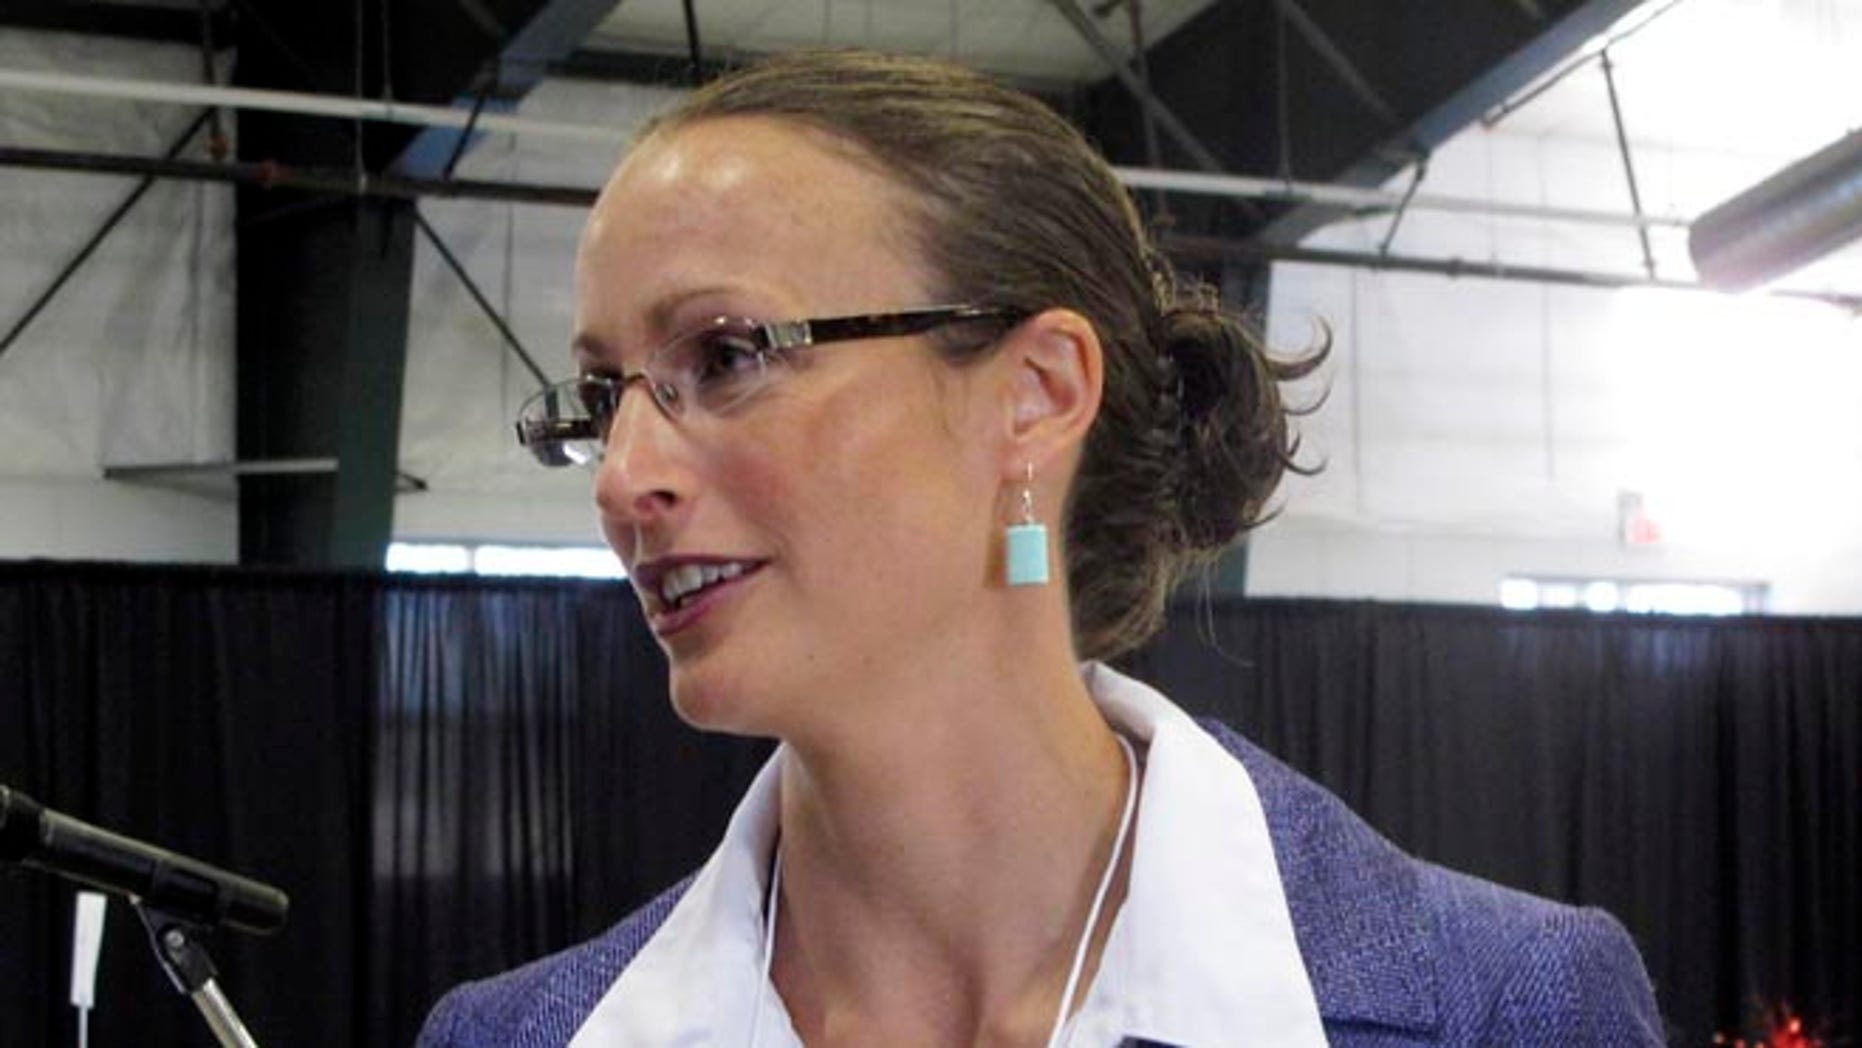 Aug. 16, 2014: Amanda Curtis at the Montana Democratic Party's special nominating convention in Helena, Montana.